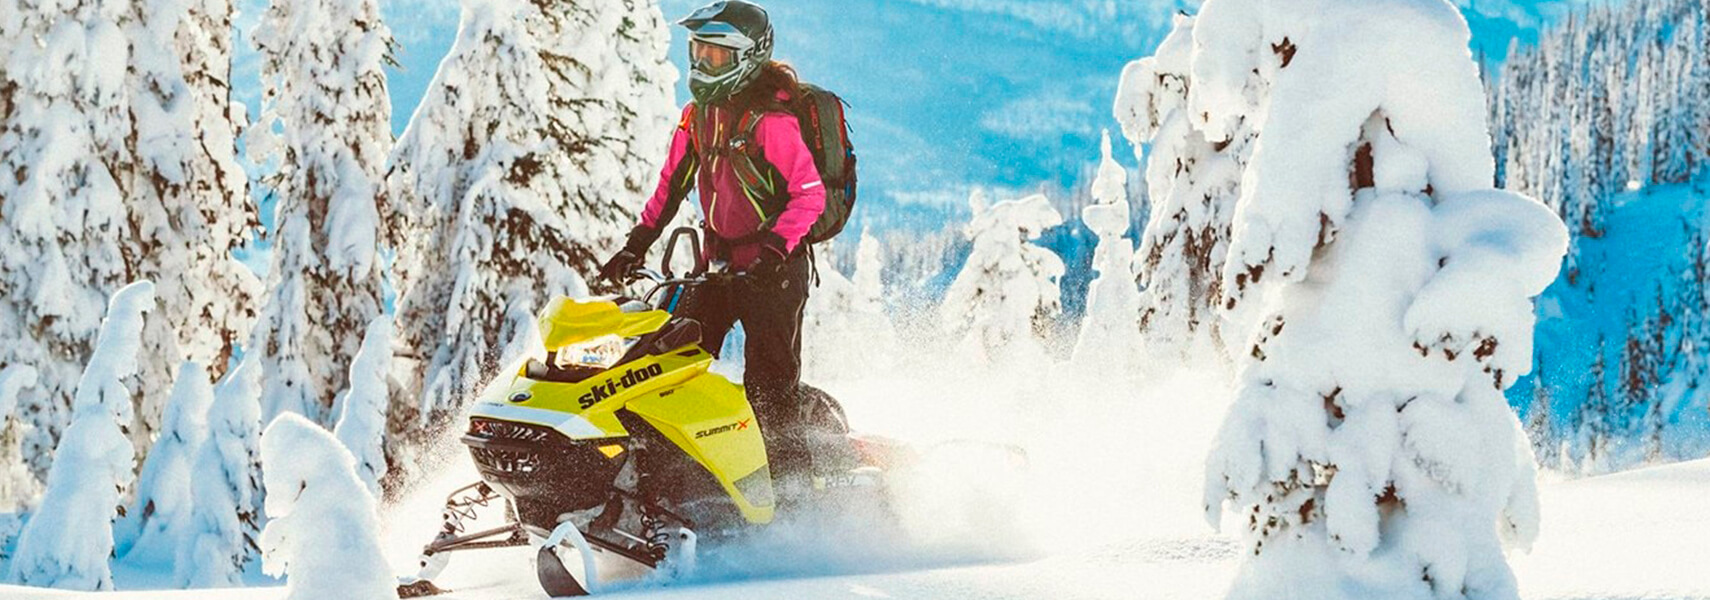 SKI-DOO - 2020 Summit X